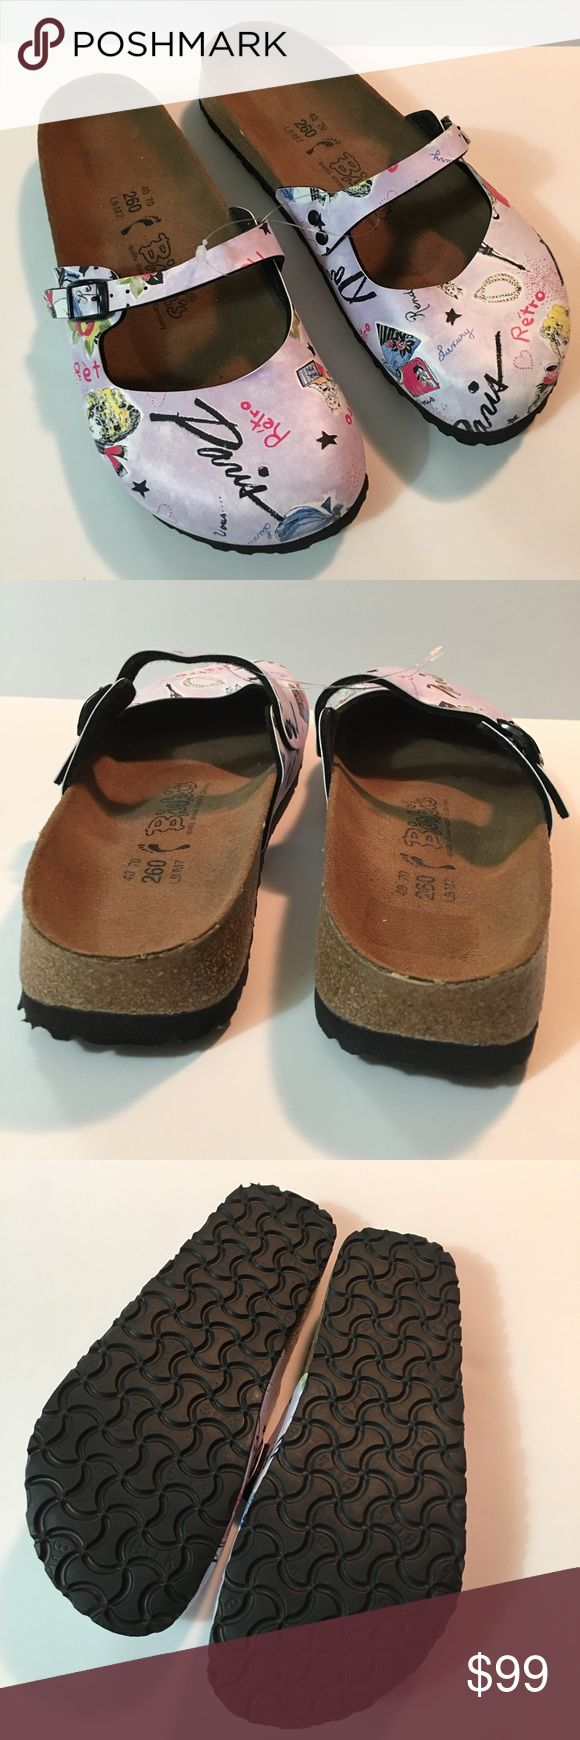 "Birki's by Birkenstock Retro/Paris Clog 9 Pristine Birki's by Birkenstock Retro/Paris Clog size 9. Pristine condition. Toe to heel length 10"". Made in Germany. Birkenstock Shoes Mules & Clogs"